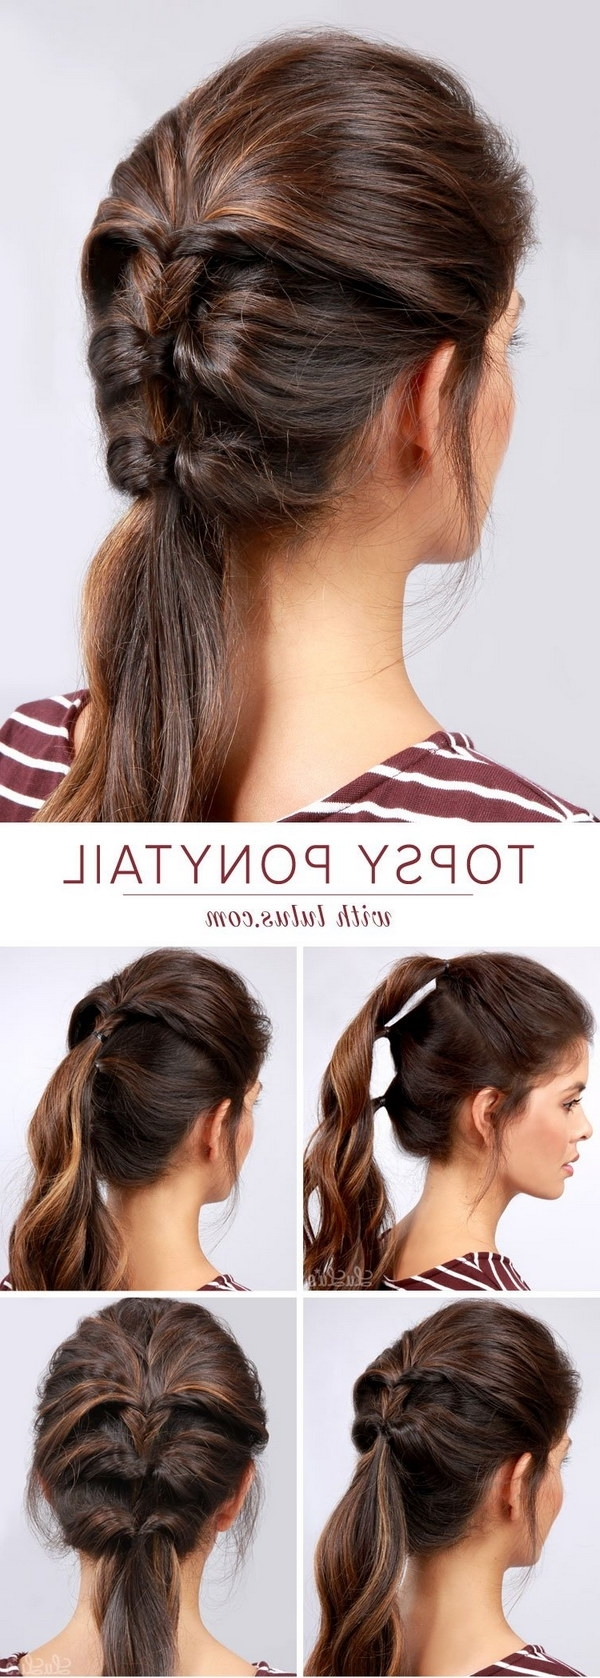 Famous Ponytail Hairstyles For Layered Hair Pertaining To 25 Gorgeous Ponytail Hailstyle Hacks And Tutorials (View 16 of 20)